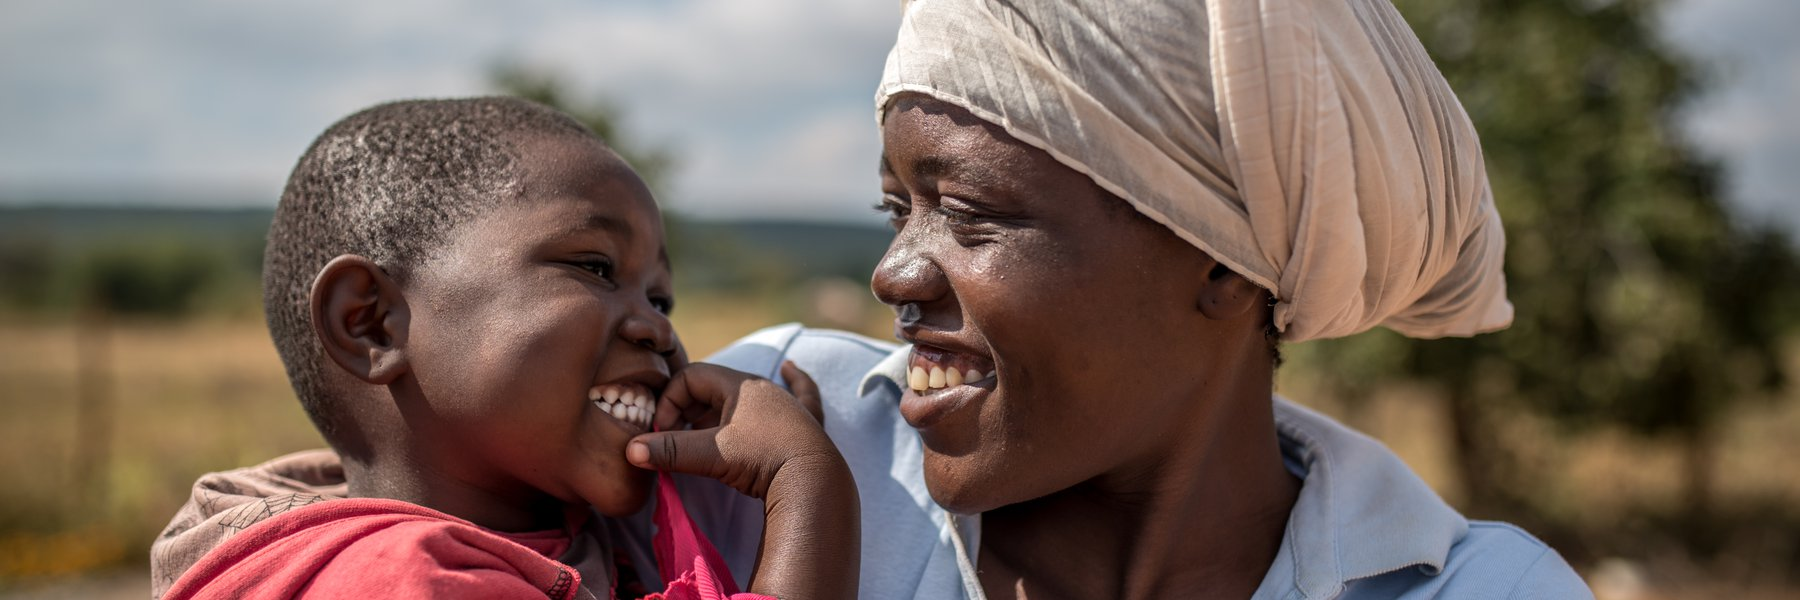 Sibongisiwe, 25, stands with her little girl Charity*, 3yrs, outside the family home in Bubi District, Ward 23, Zimbabwe.